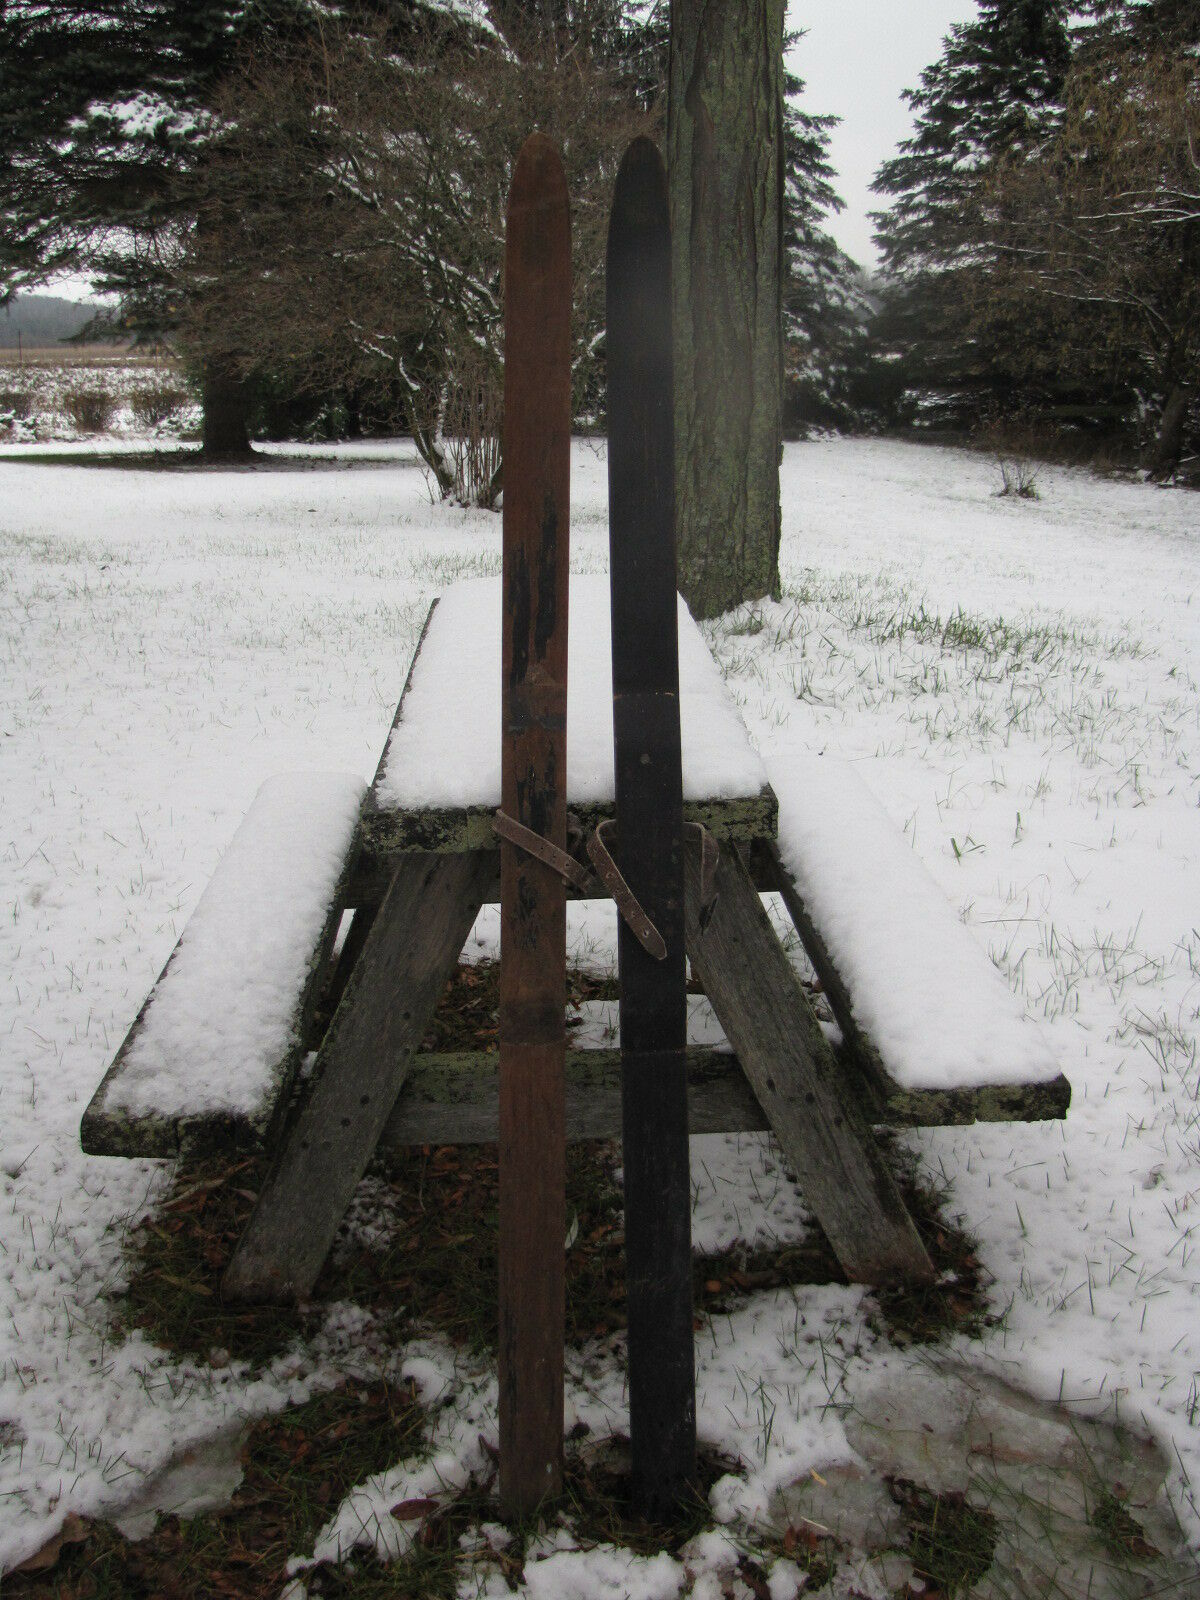 VINTAGE WOODEN SNOW SKIS 47 INCHES